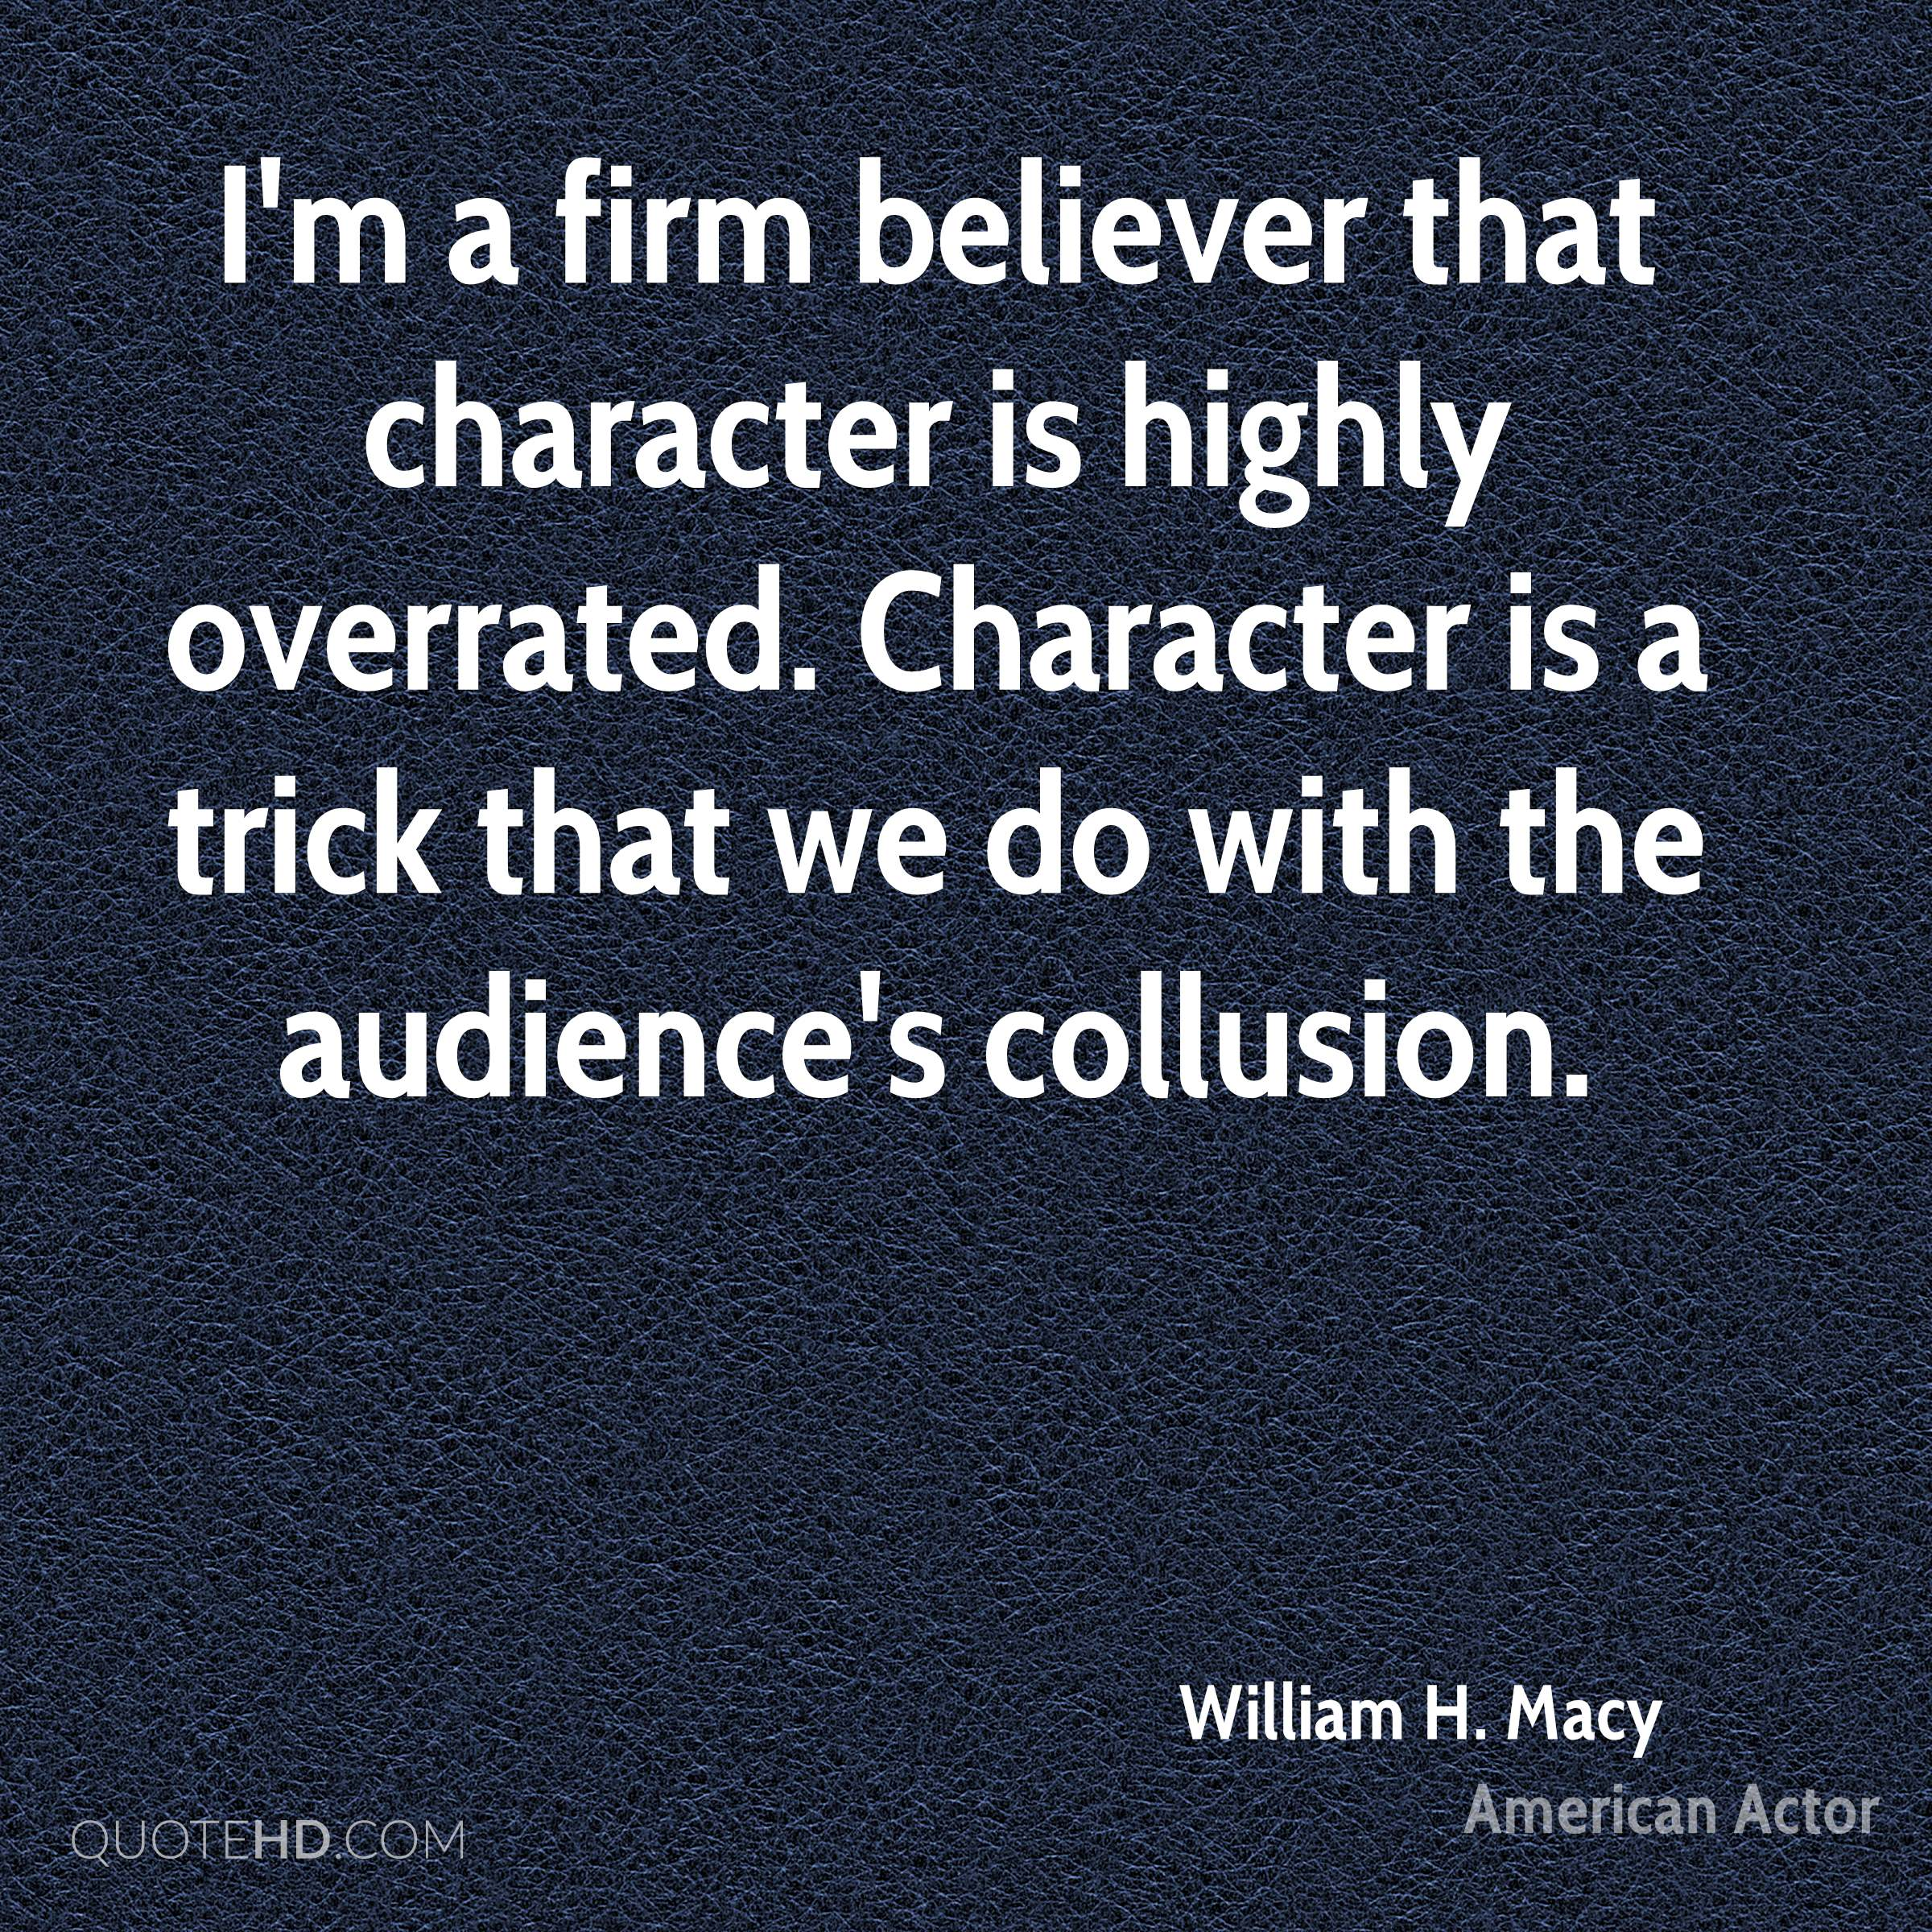 I'm a firm believer that character is highly overrated. Character is a trick that we do with the audience's collusion.